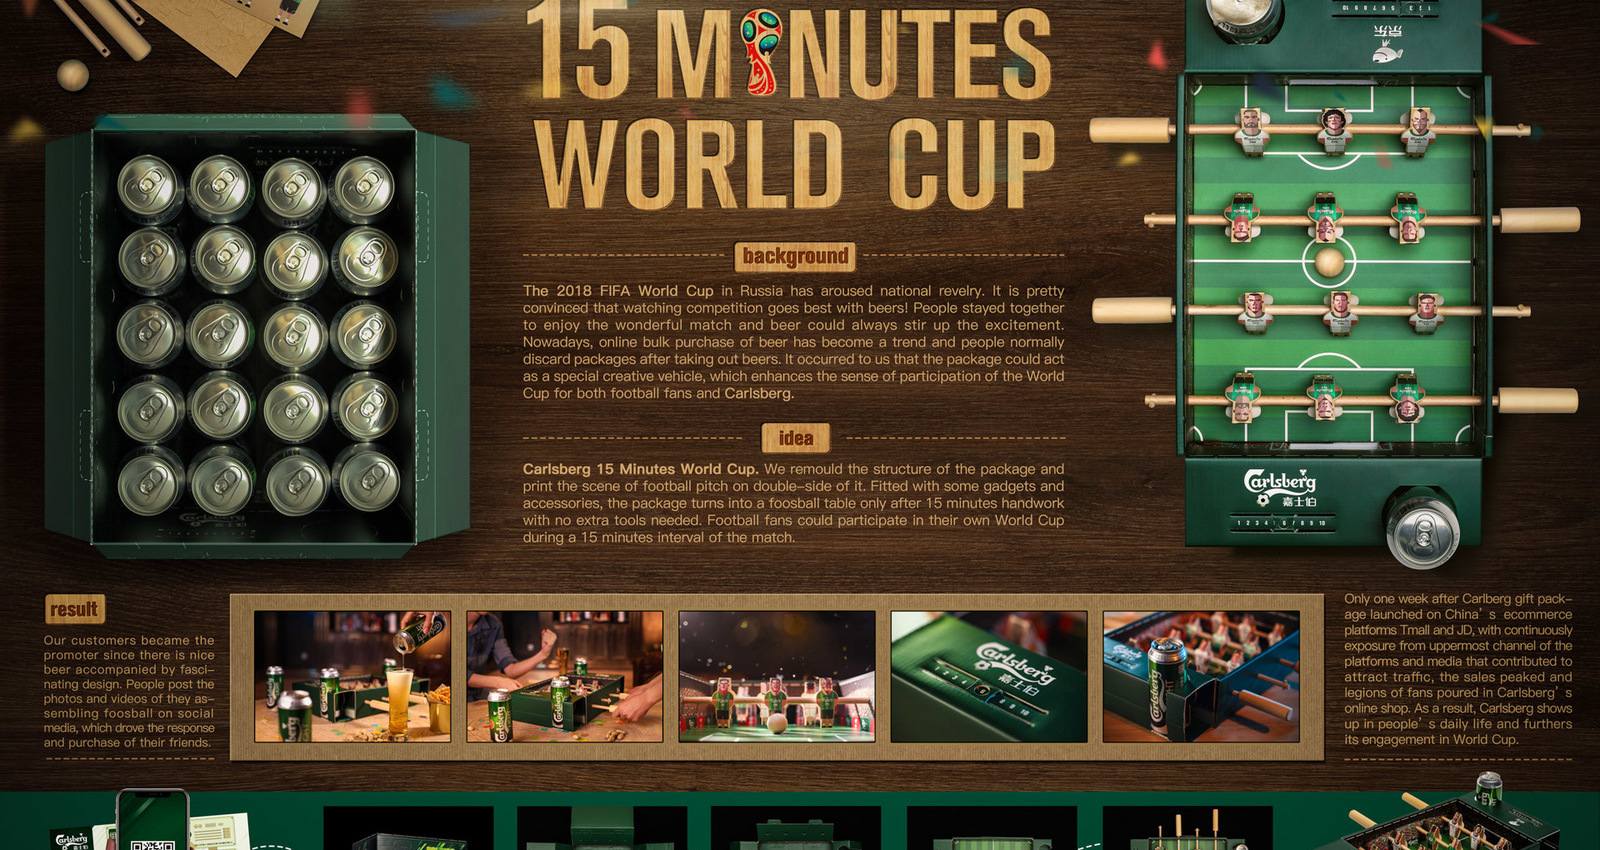 15 Minutes World Cup